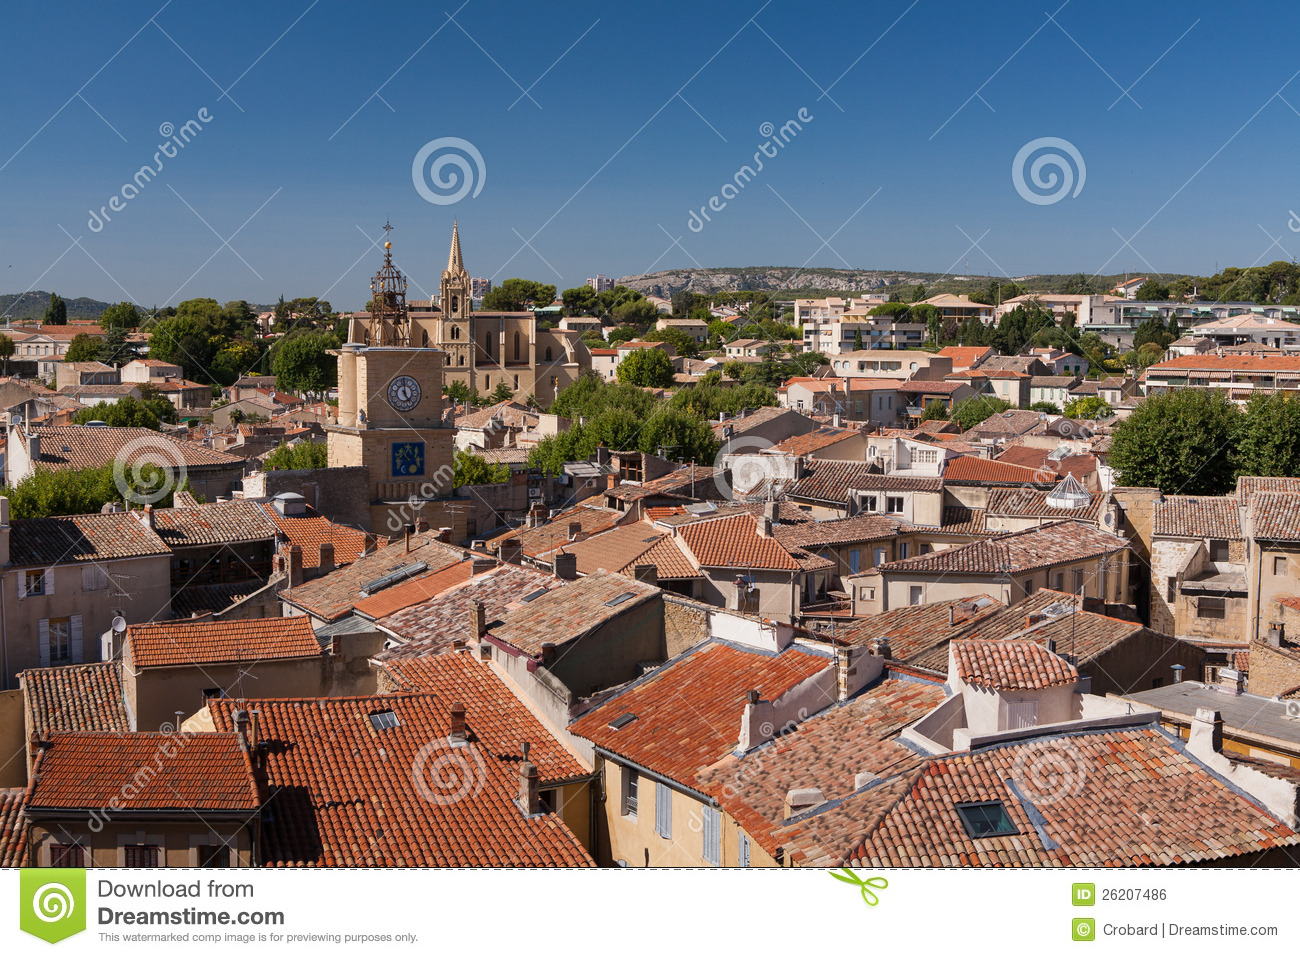 Town of salon de provence france royalty free stock image - Salon de chat francais ...